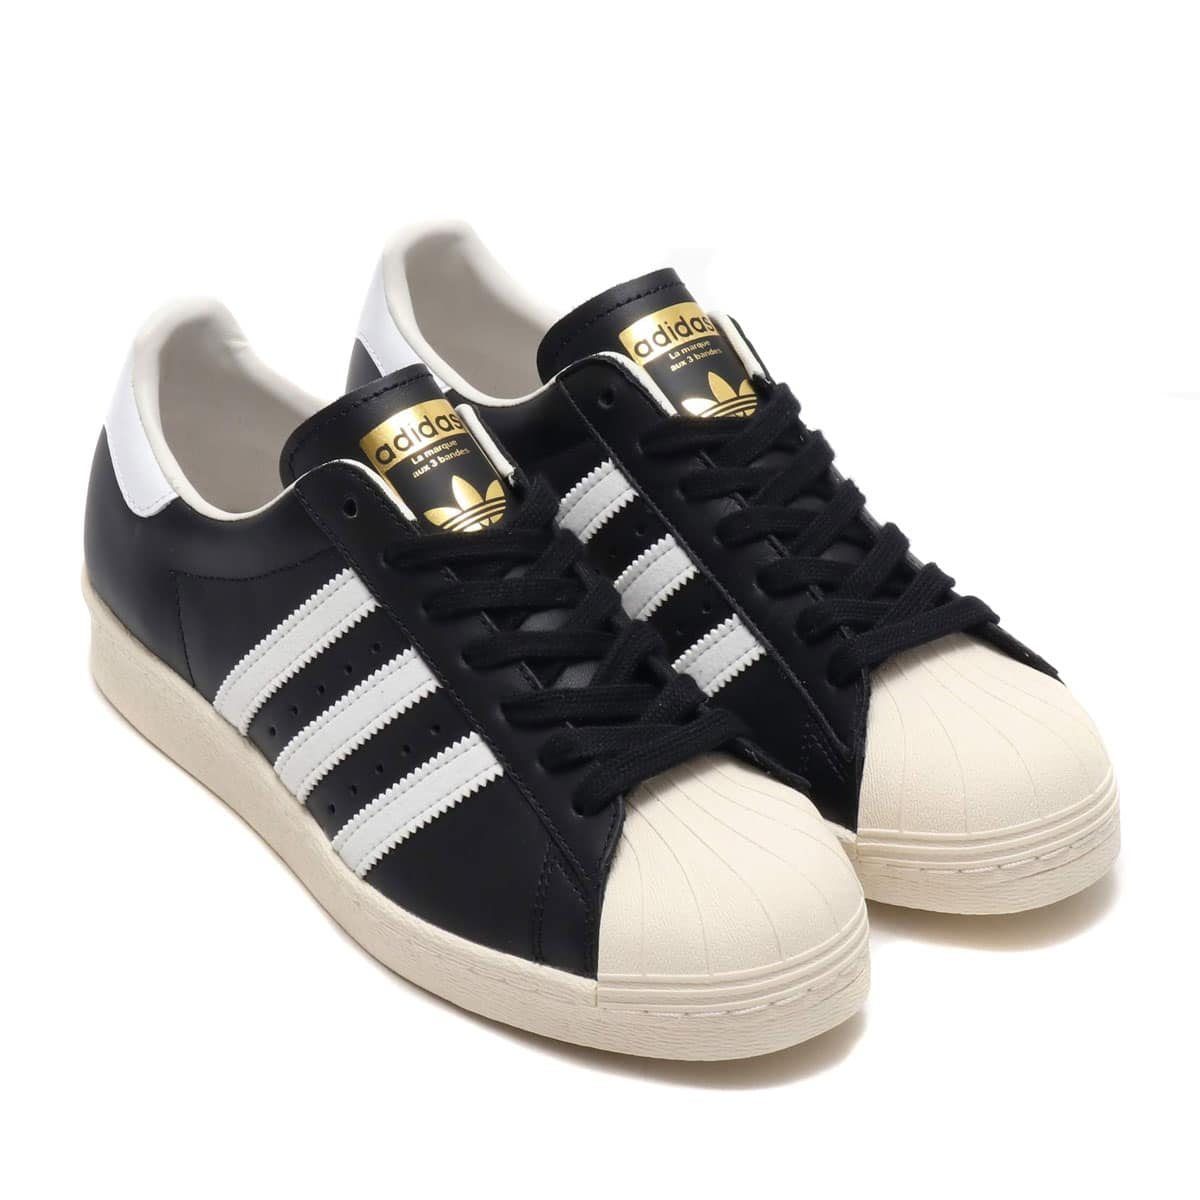 adidas Originals SUPERSTAR 80s BLACK/WHITE 19FW-I_photo_large